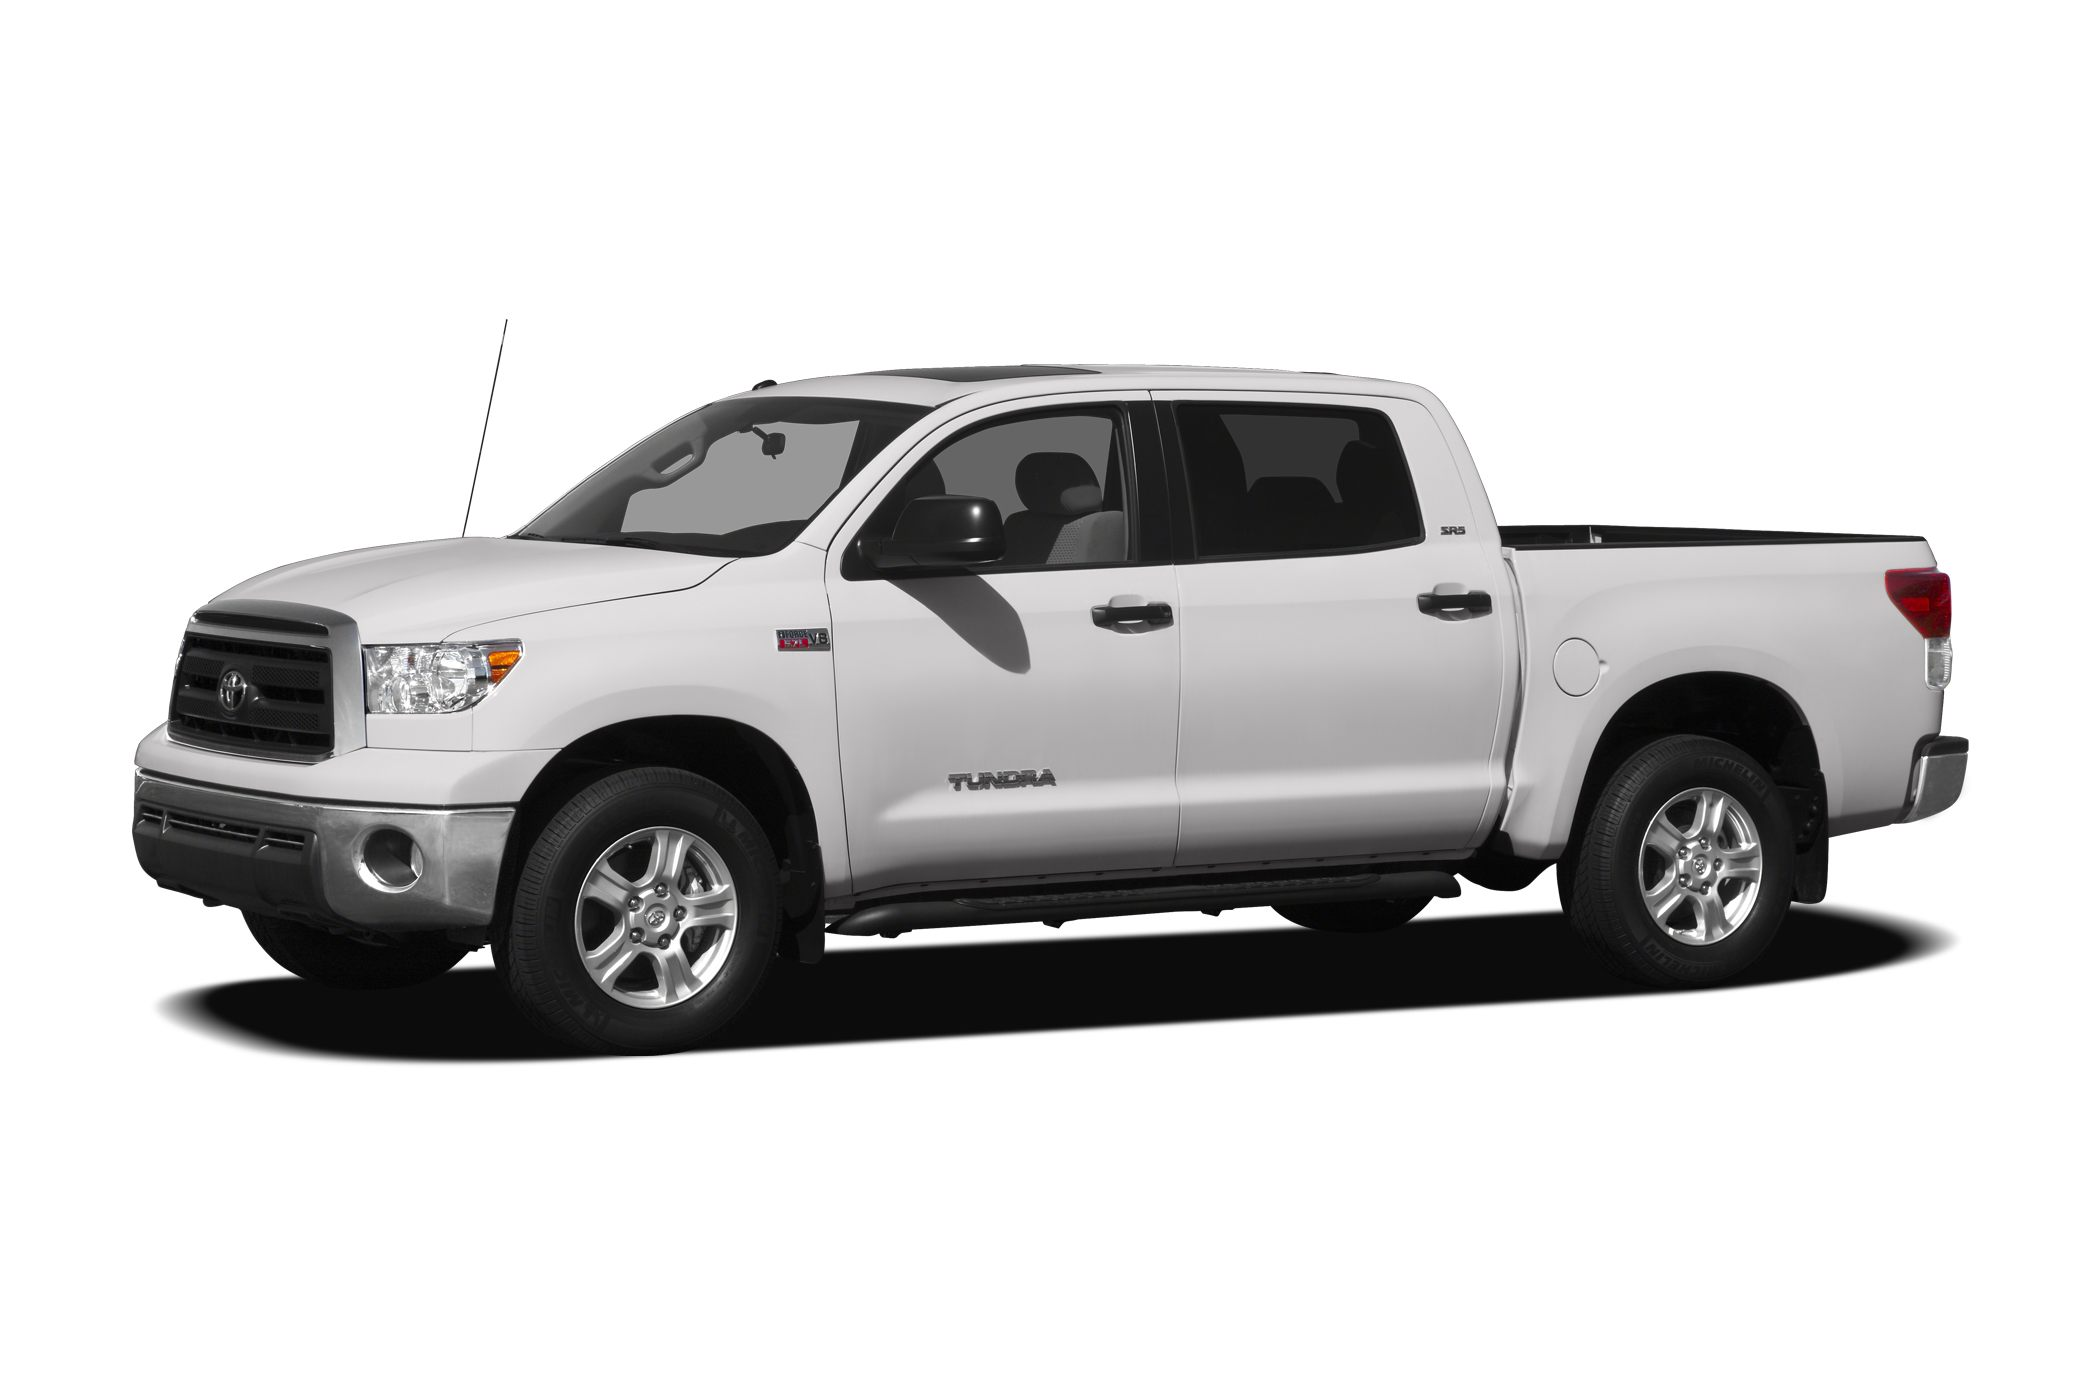 2011 Toyota Tundra Limited GREAT MILES 46079 6900 below Kelley Blue Book LTD trim Sunroof N